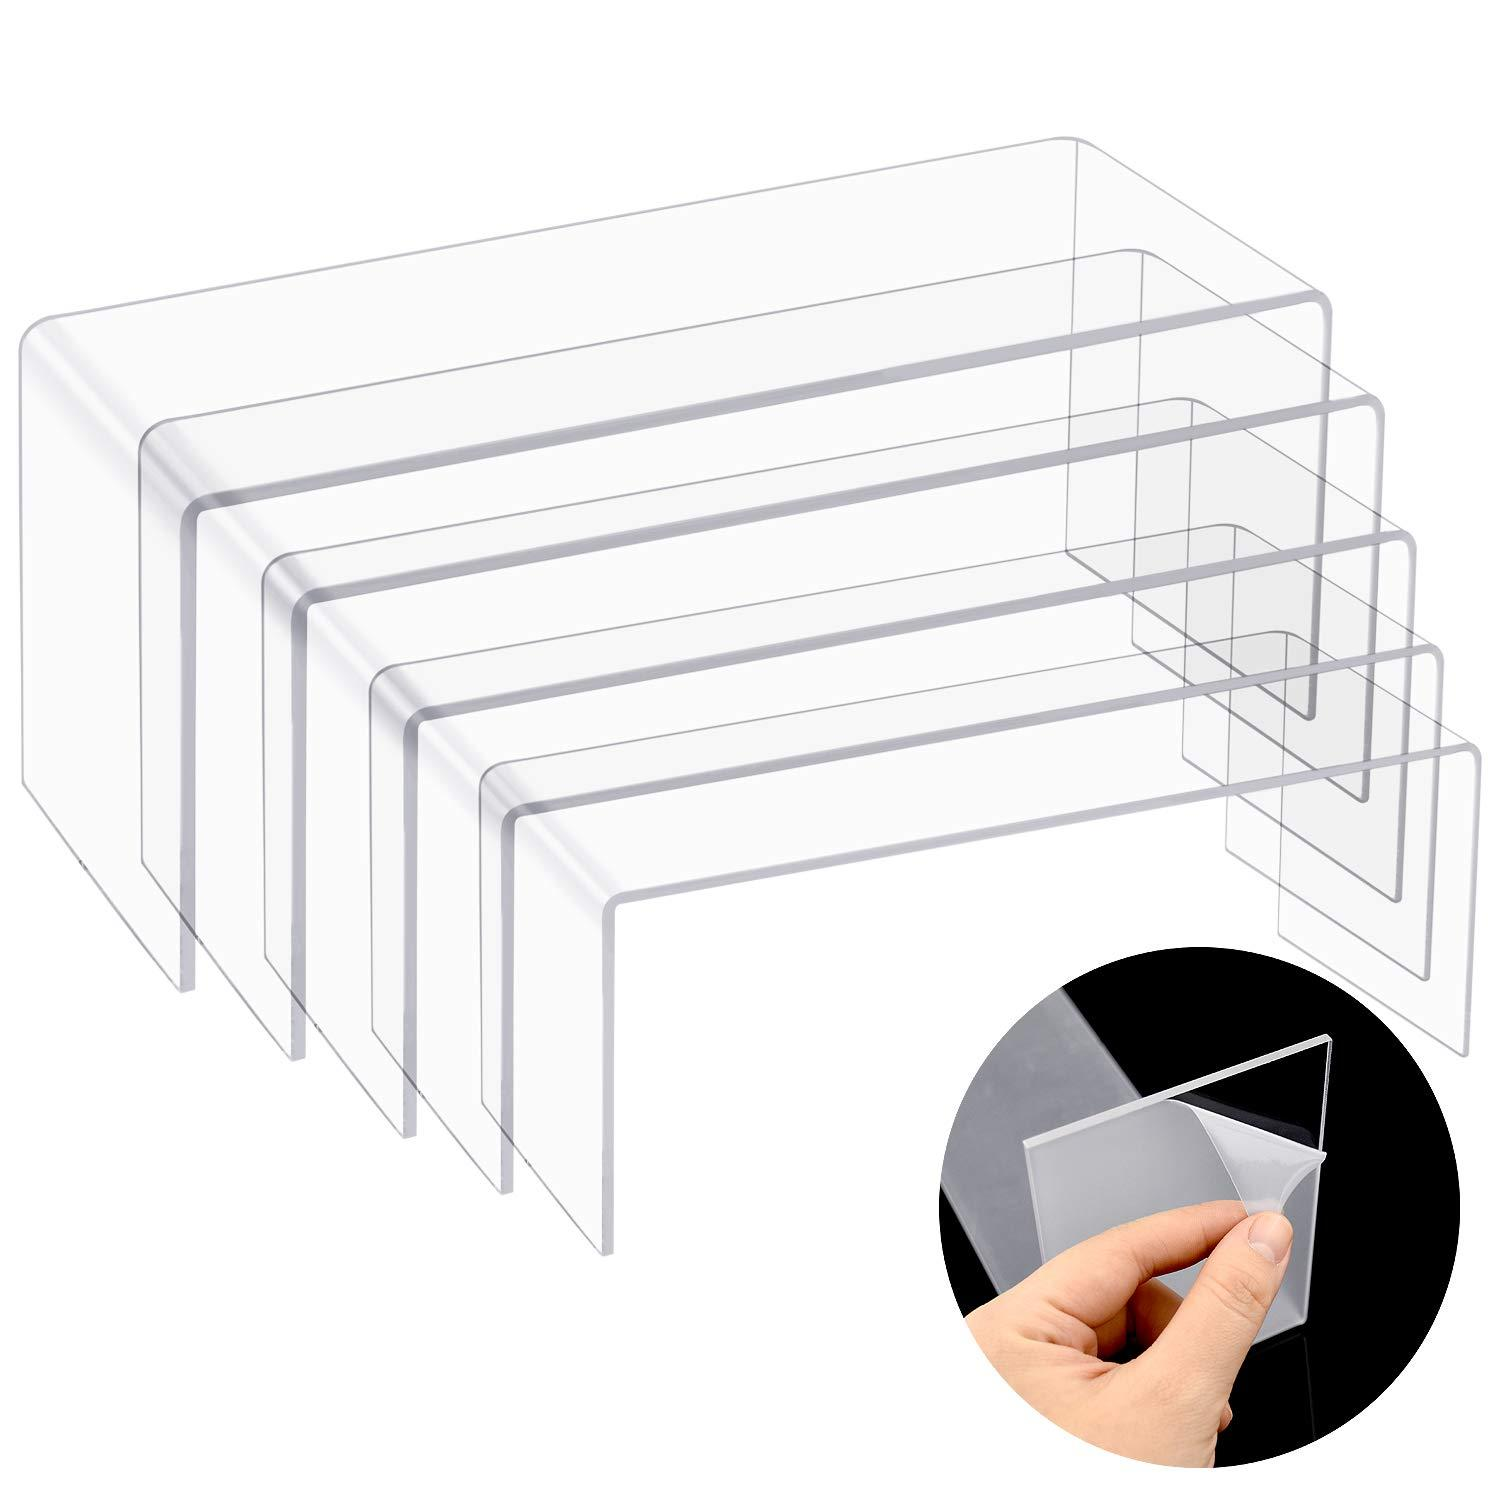 Hot Sell Clear Strong Acrylic Display Riser / Stand 2 buyers/Acrylic display stand